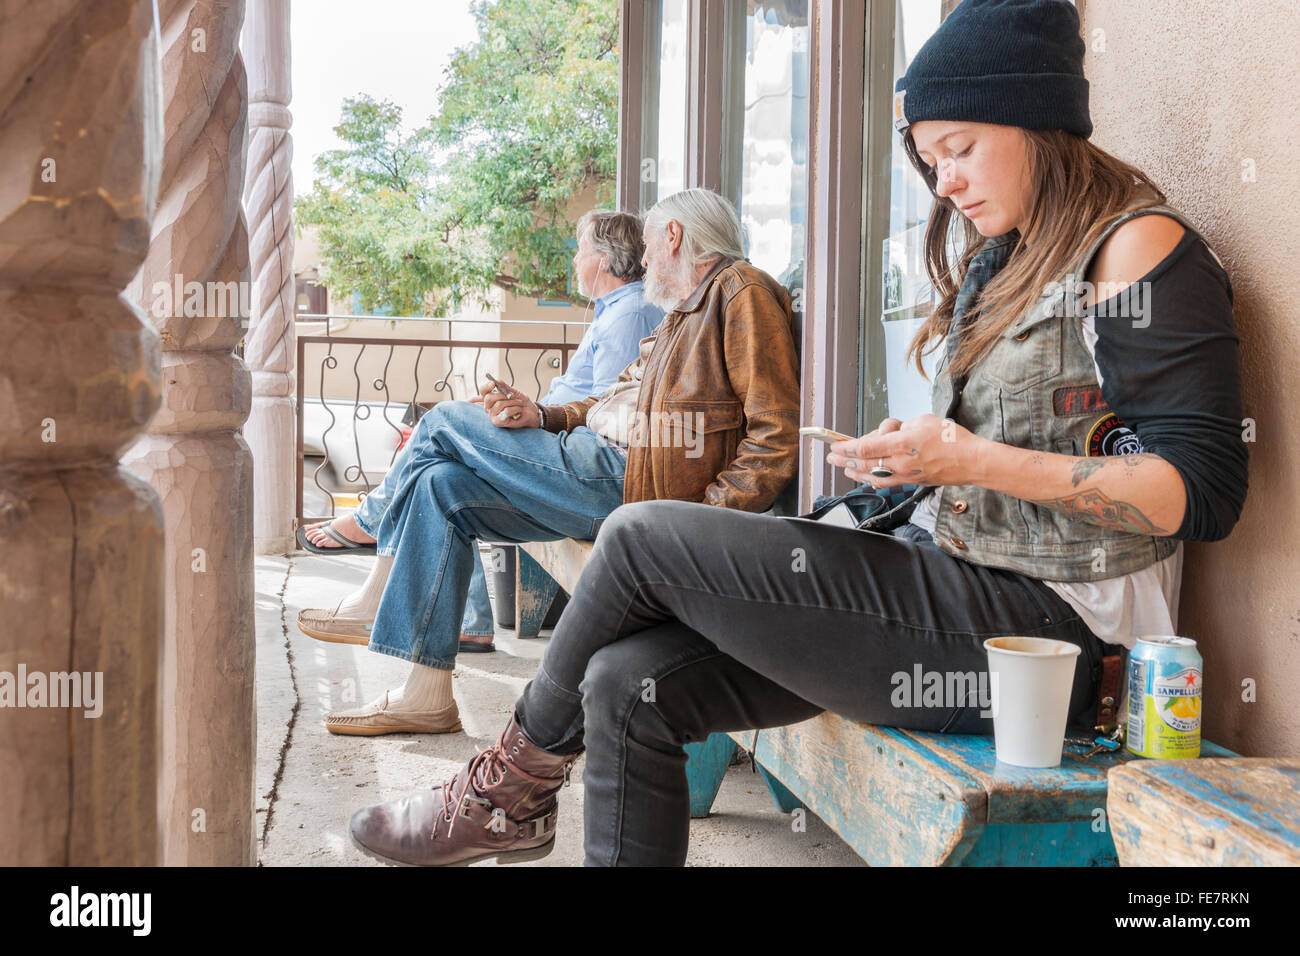 Three people sitting outside a cafe two older men looking away beyond a young woman looking at her mobile phone - Stock Image